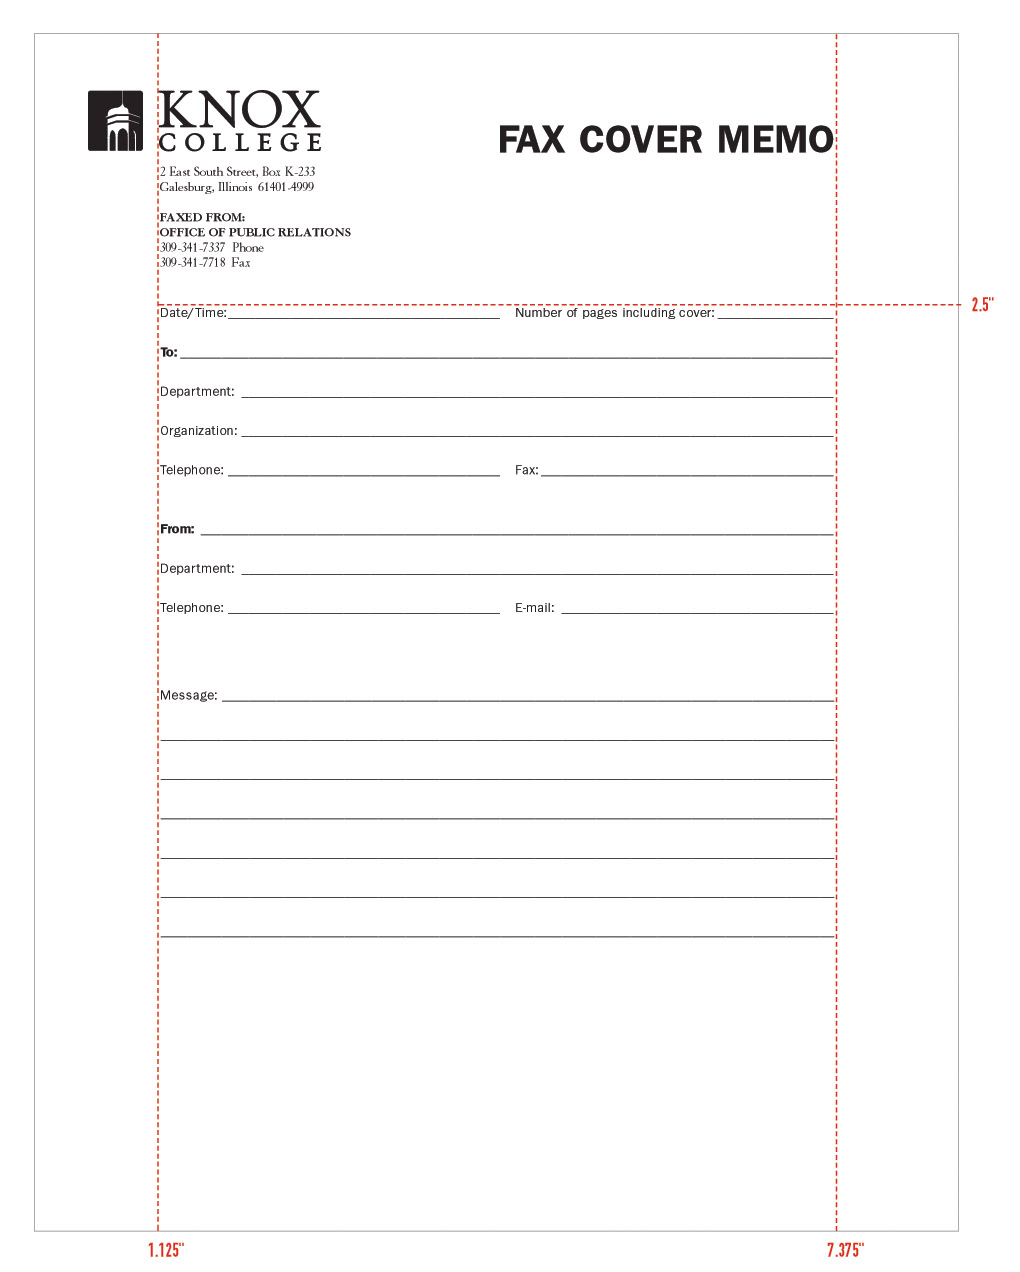 stationery system graphic identities standards college fax cover memo